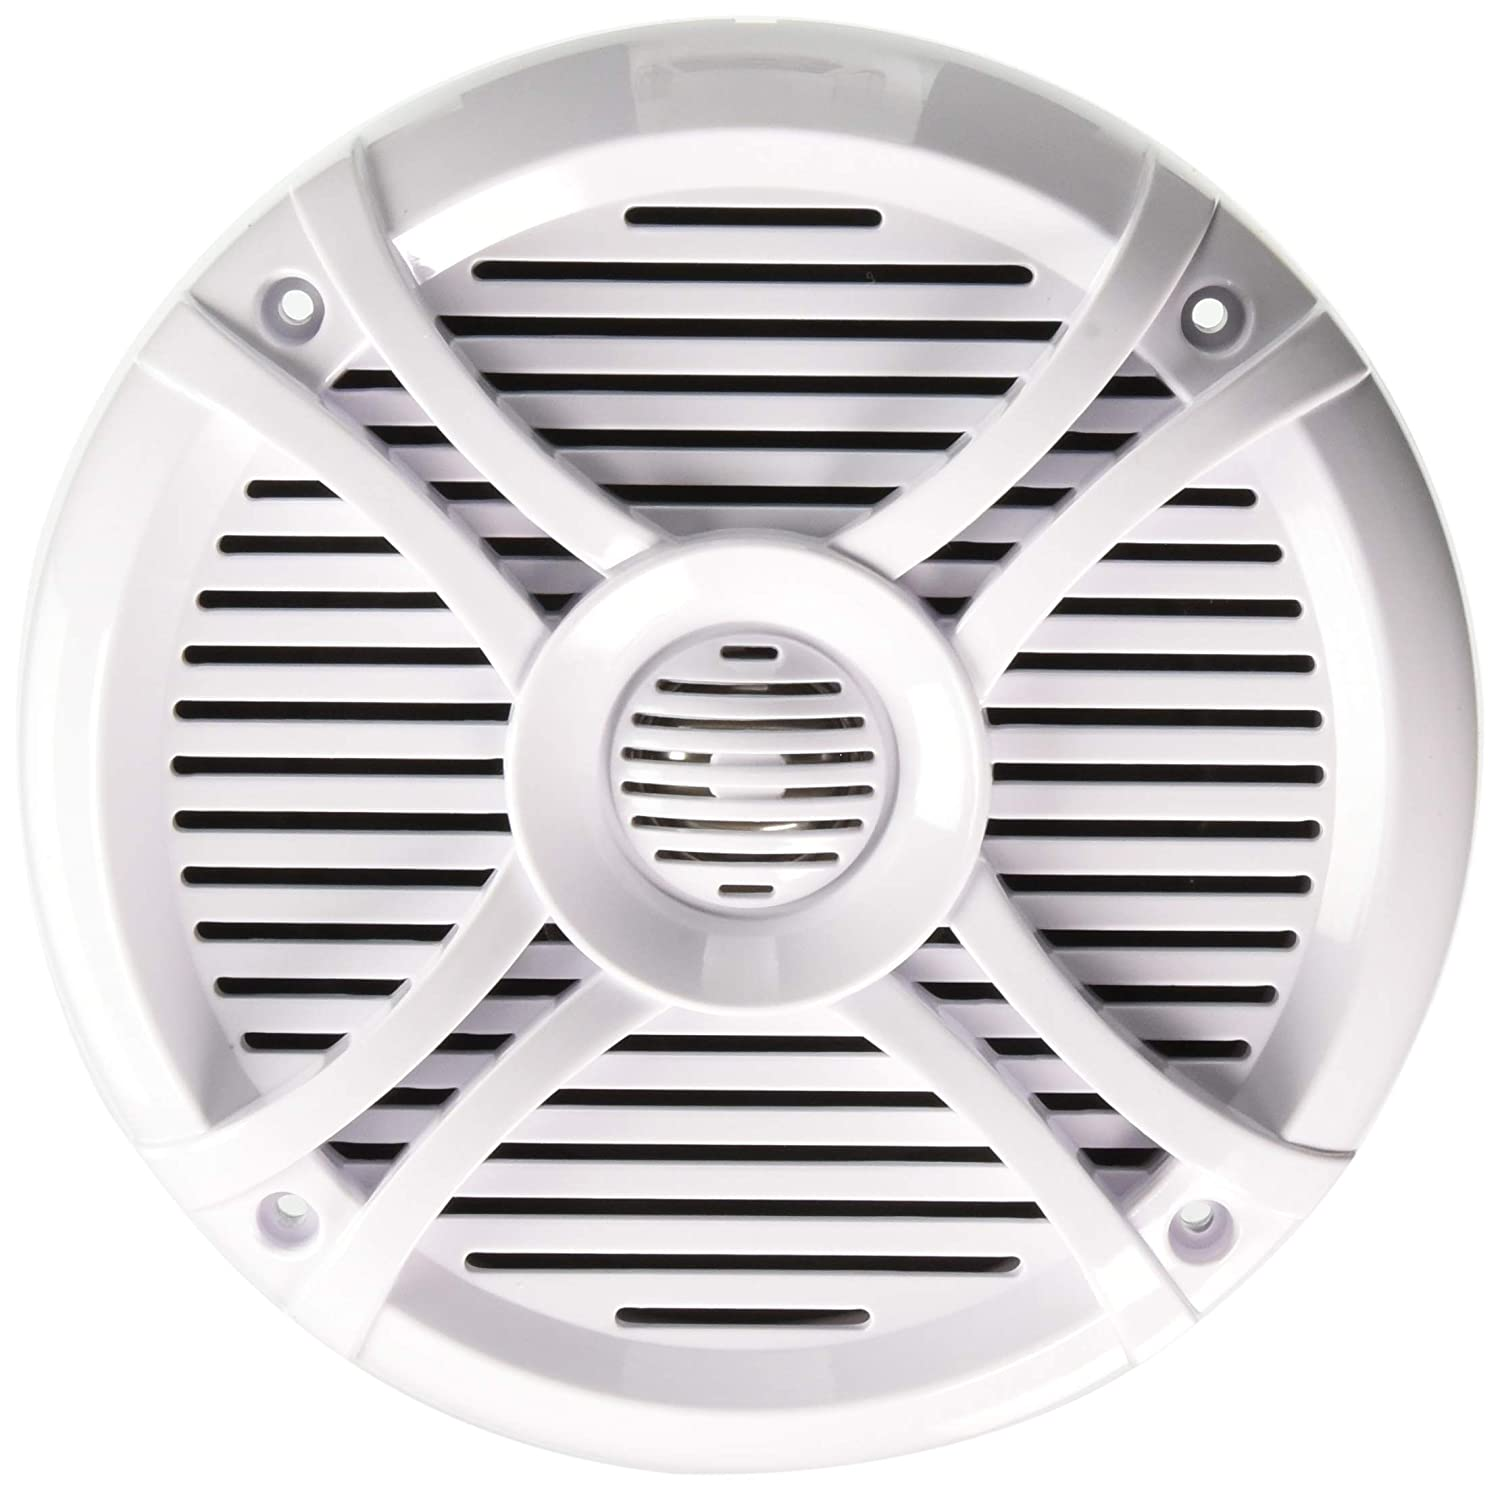 Rockville Rmsts65w Pair 6.5-Inch 800 Watt Waterproof Marine Boat Speakers 2-Way White Audiosavings